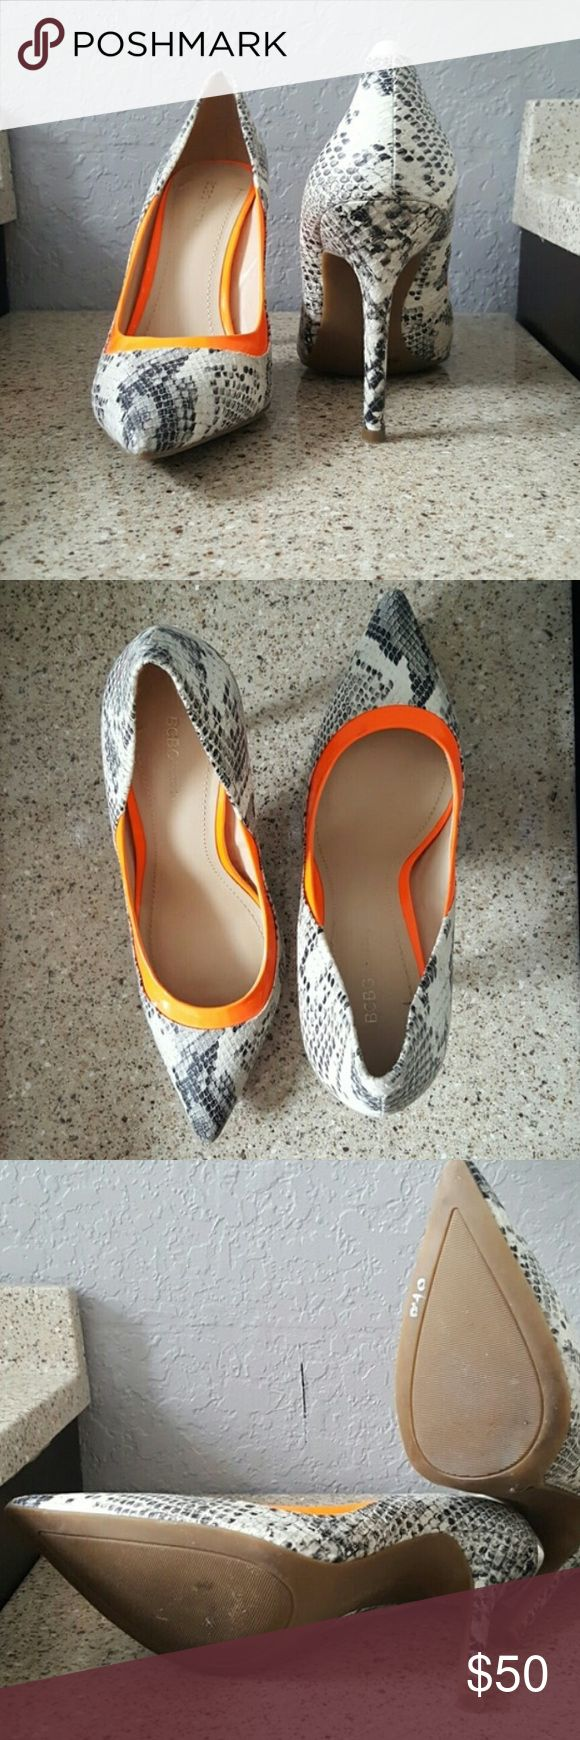 """BCBG snakeskin and orange heels Has the perfect heel height to give off a flirty classy incline. Sleek look with an orange accent to make your outfit pop! Can be paired with professional attire, night out attire, semi-casual brunch/lunch attire, etc. 3.75"""" heel with flat platform. BCBGeneration. Never been worn! BCBGeneration Shoes Heels"""